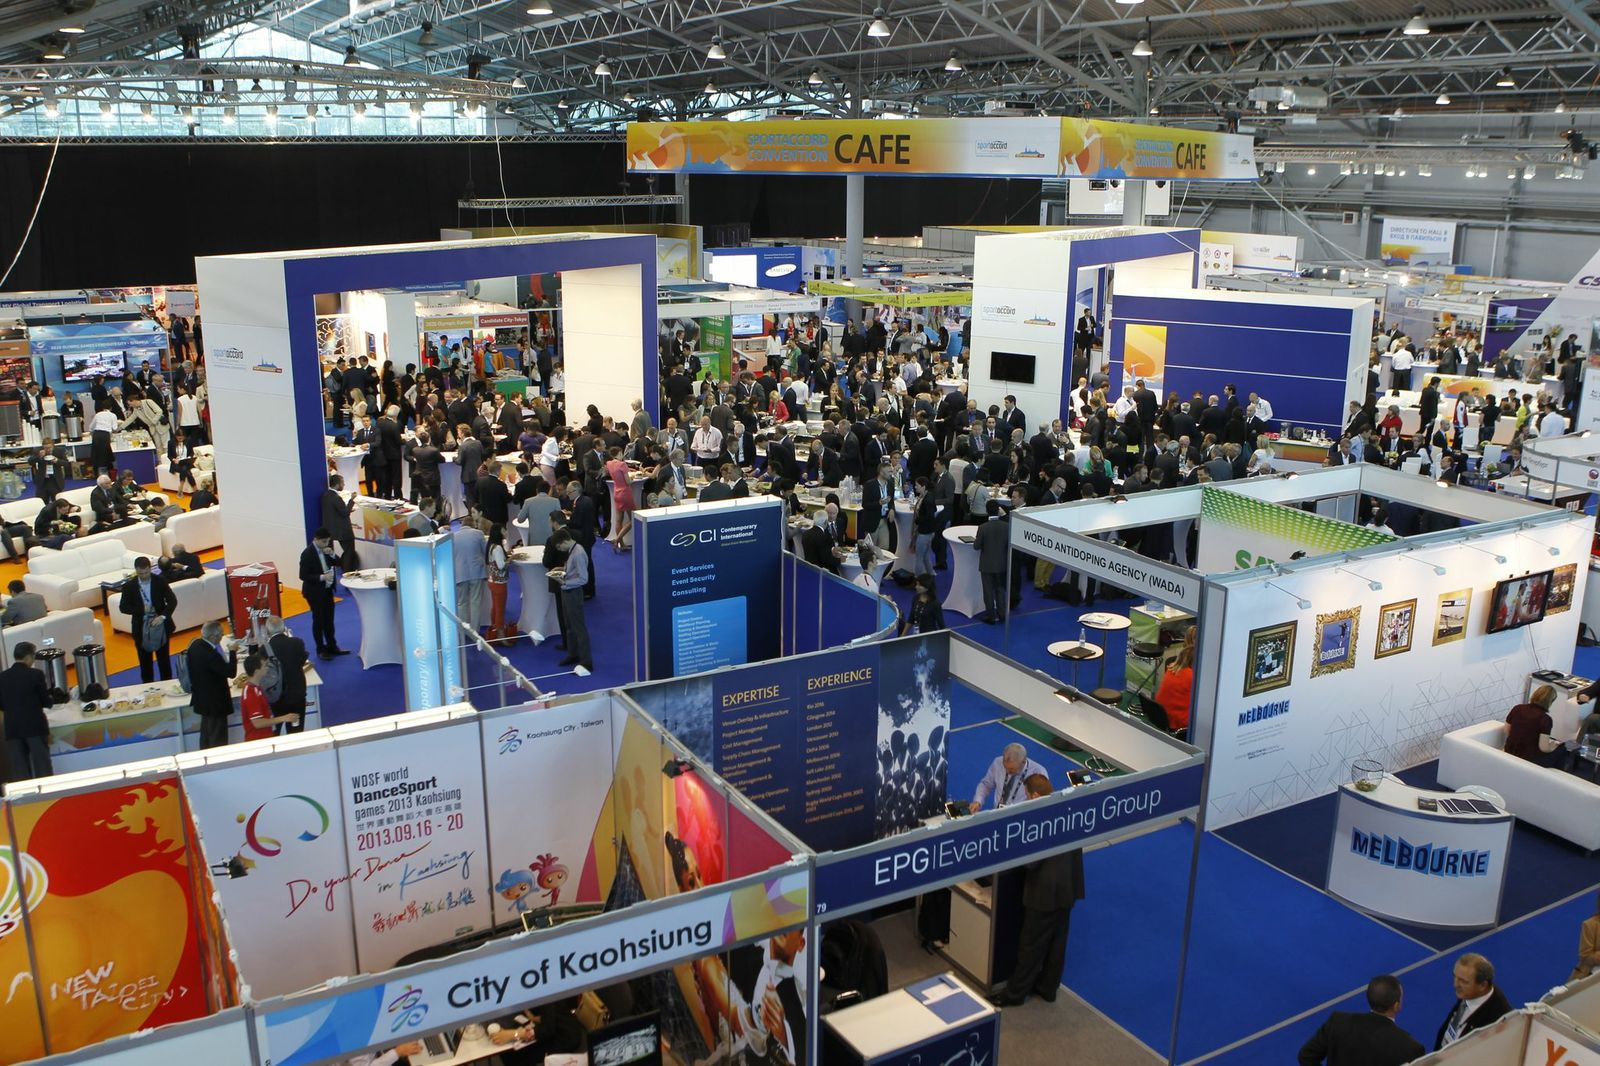 The exhibition hall during the 2013 SportAccord International Convention in Saint Petersburg, Russia